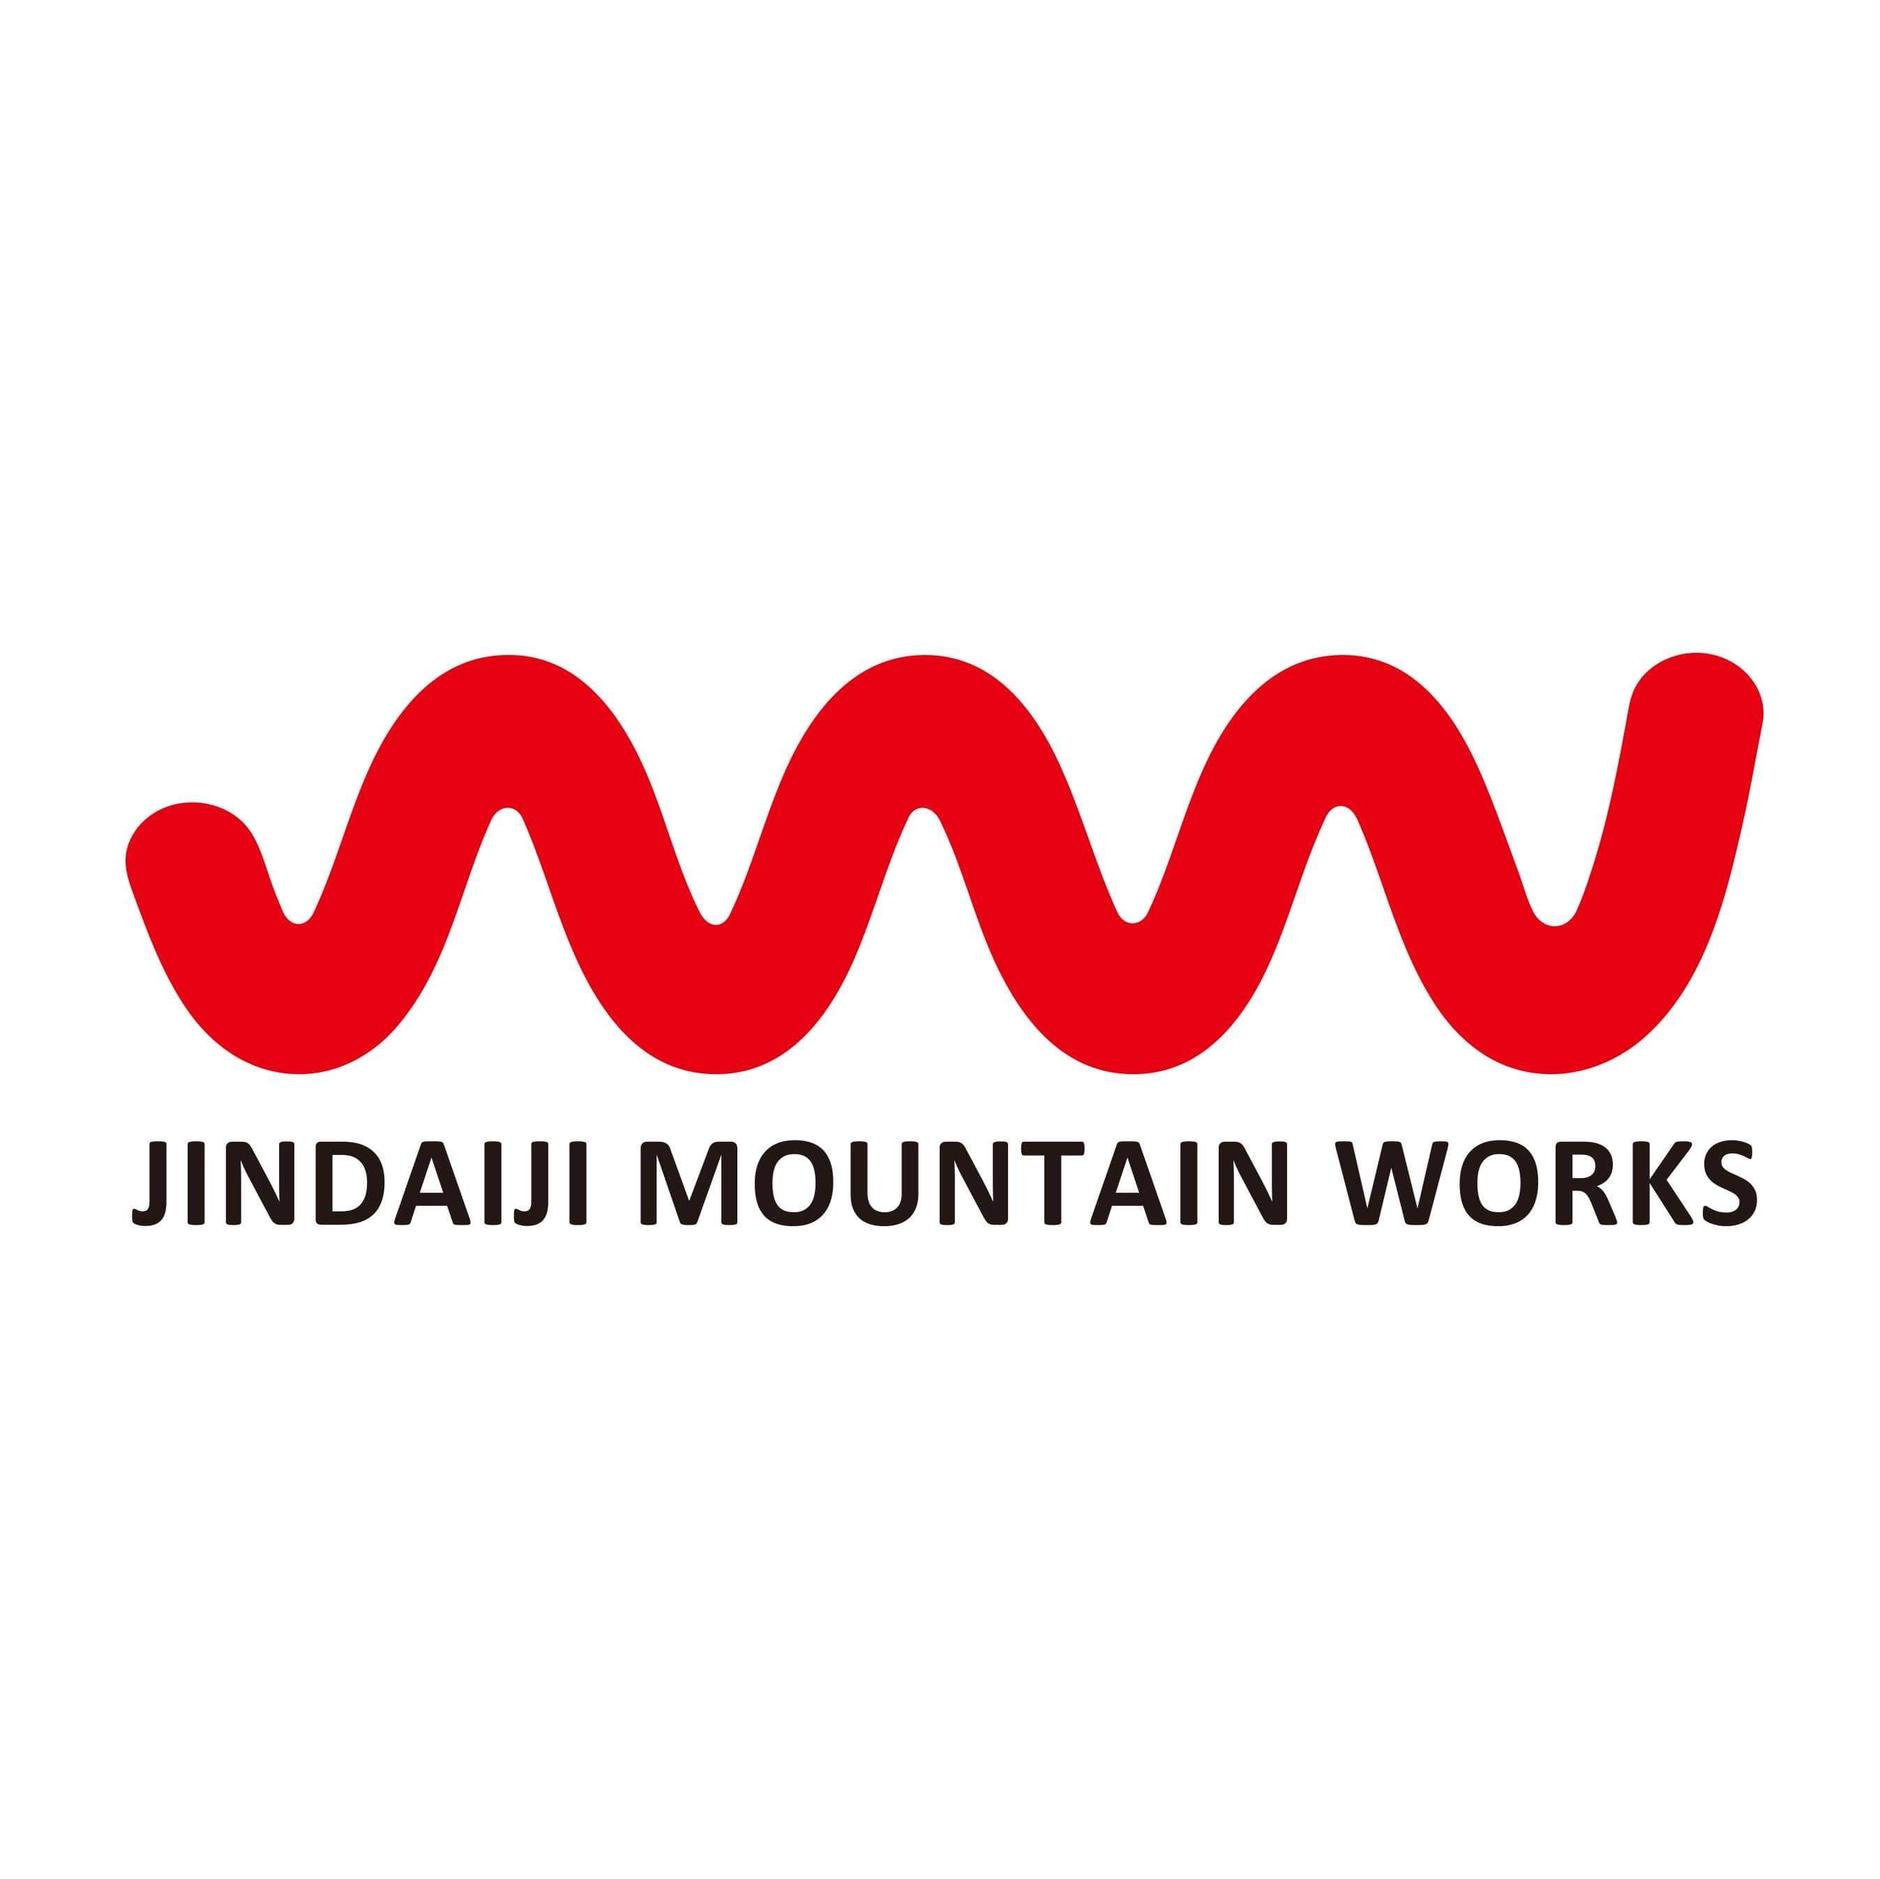 jindaiji mountain works web shop